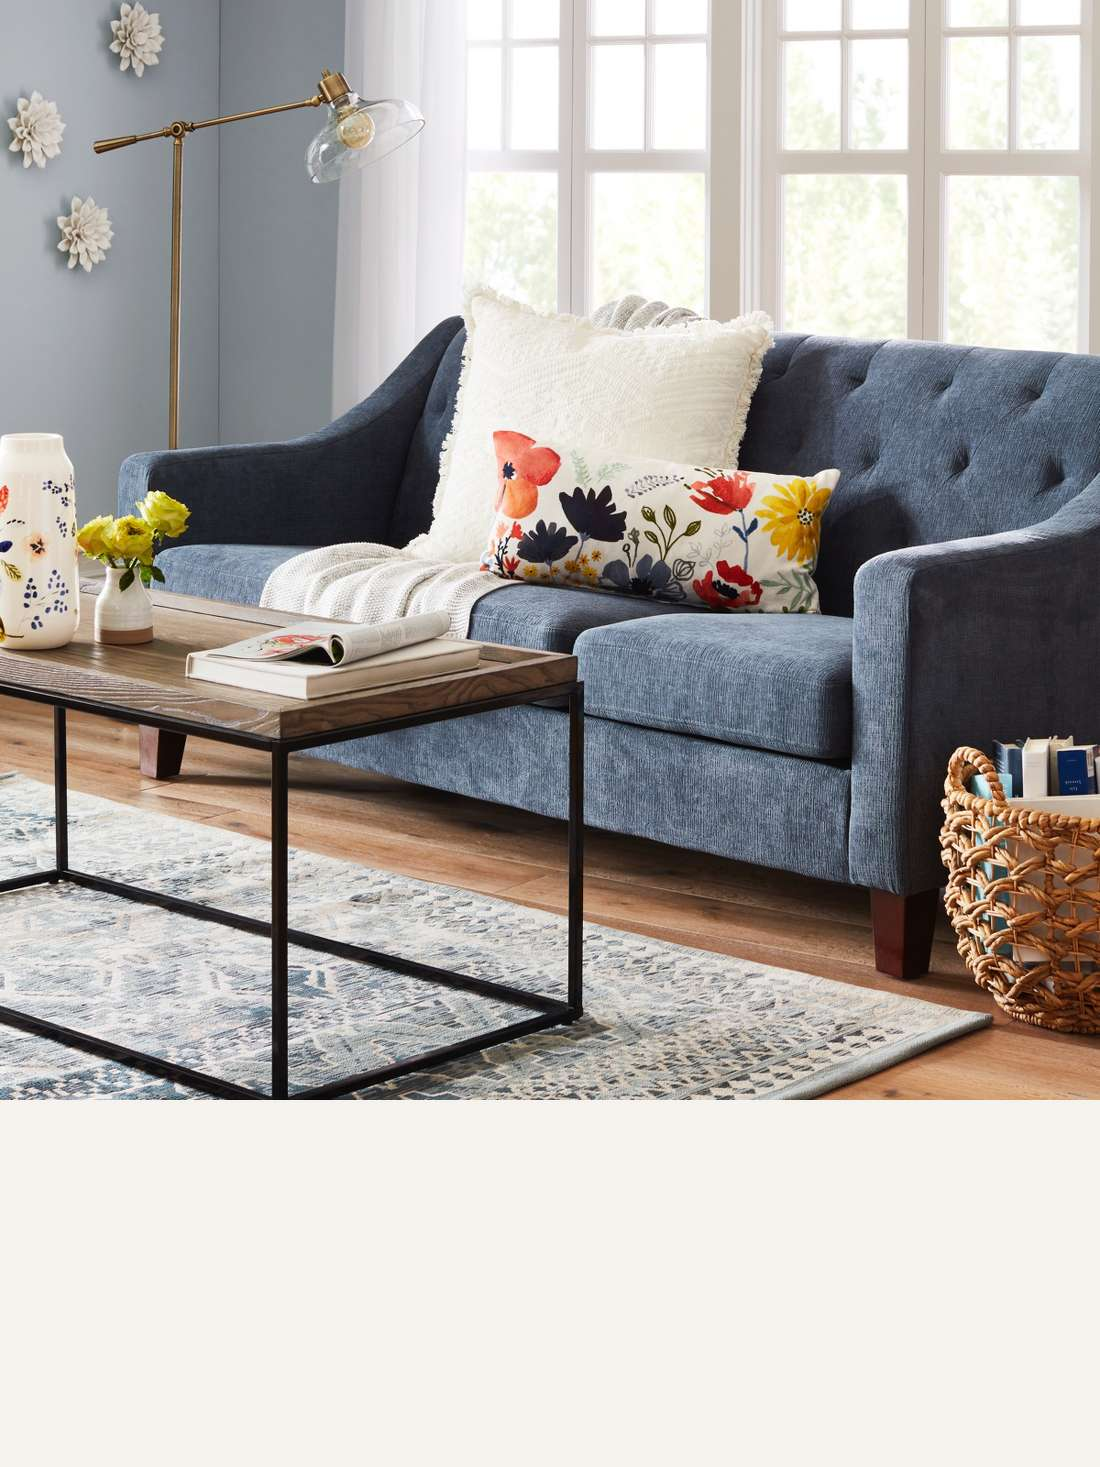 sofas sectionals target room essentials storage accent table sofa are great for small spaces while bigger can anchor larger browse mini patio umbrella pier imports mirrors kitchen